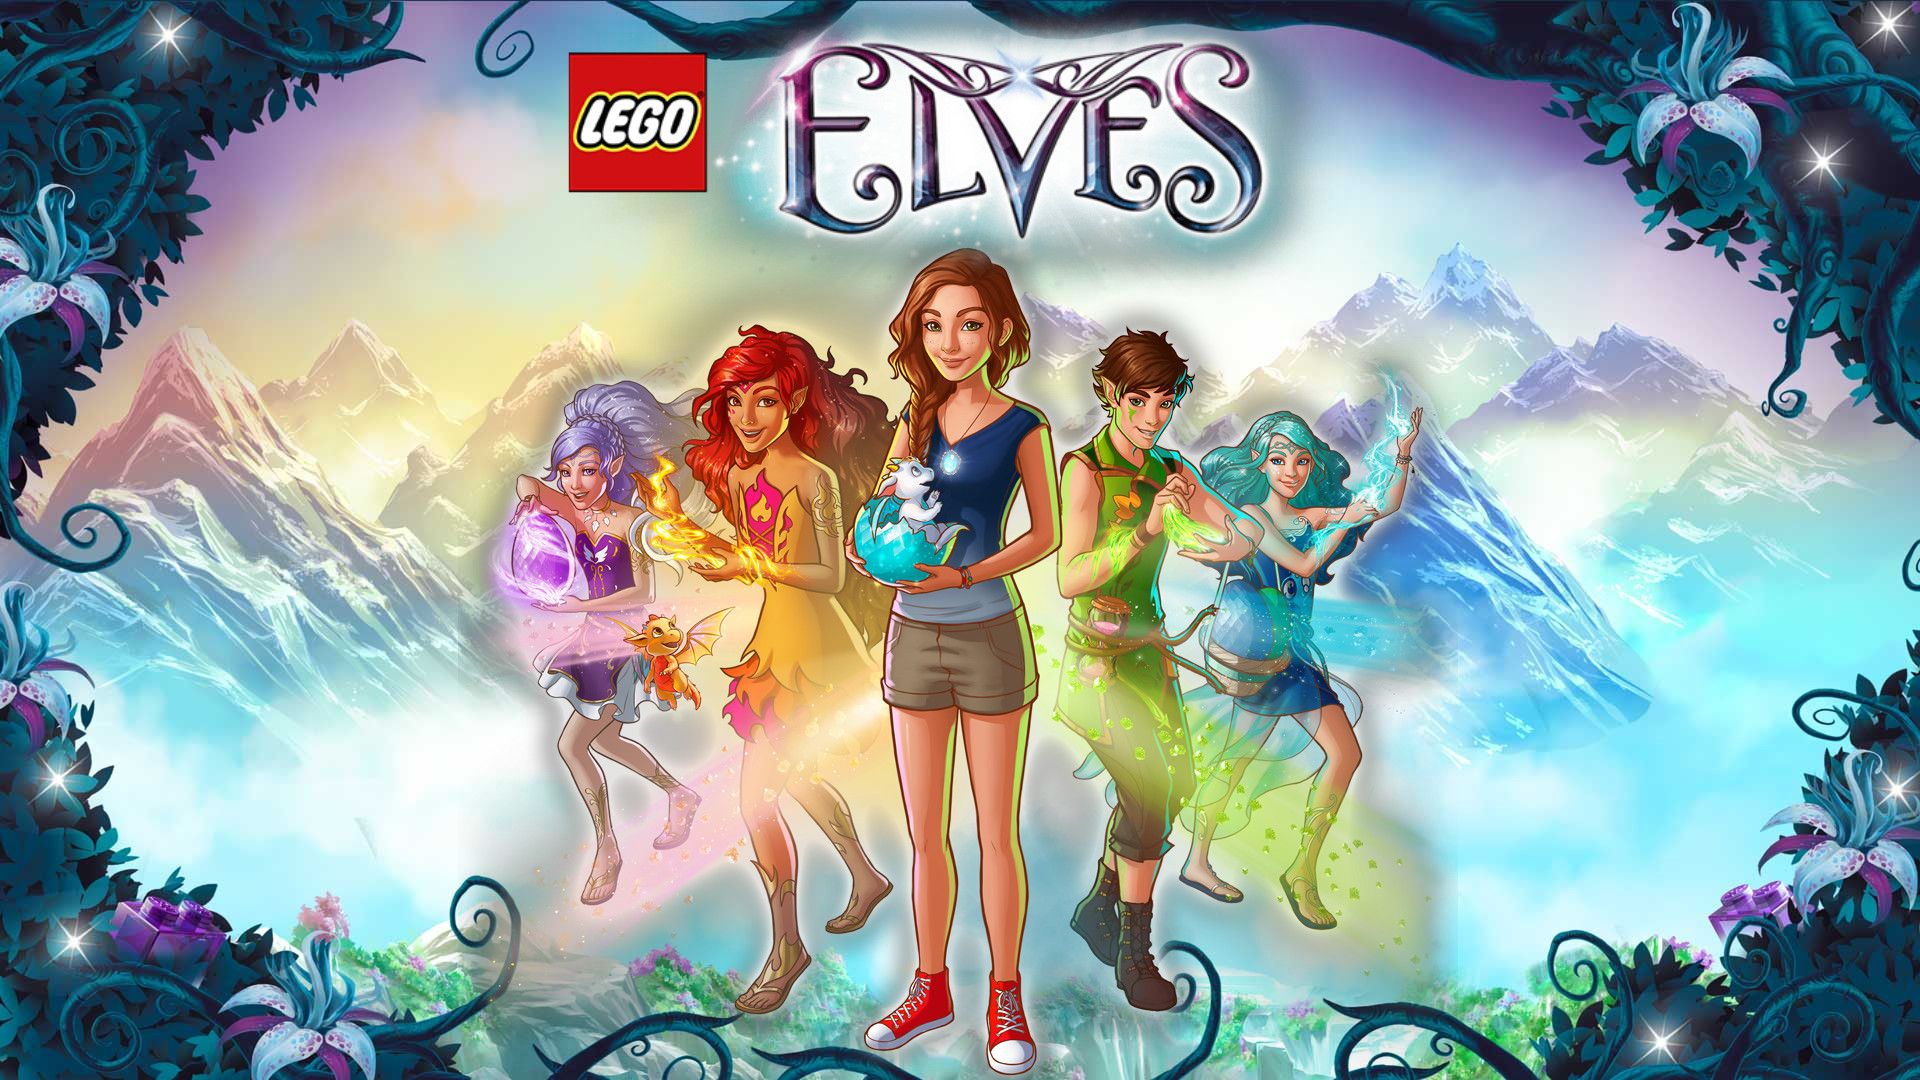 Lego Elves Wallpaper